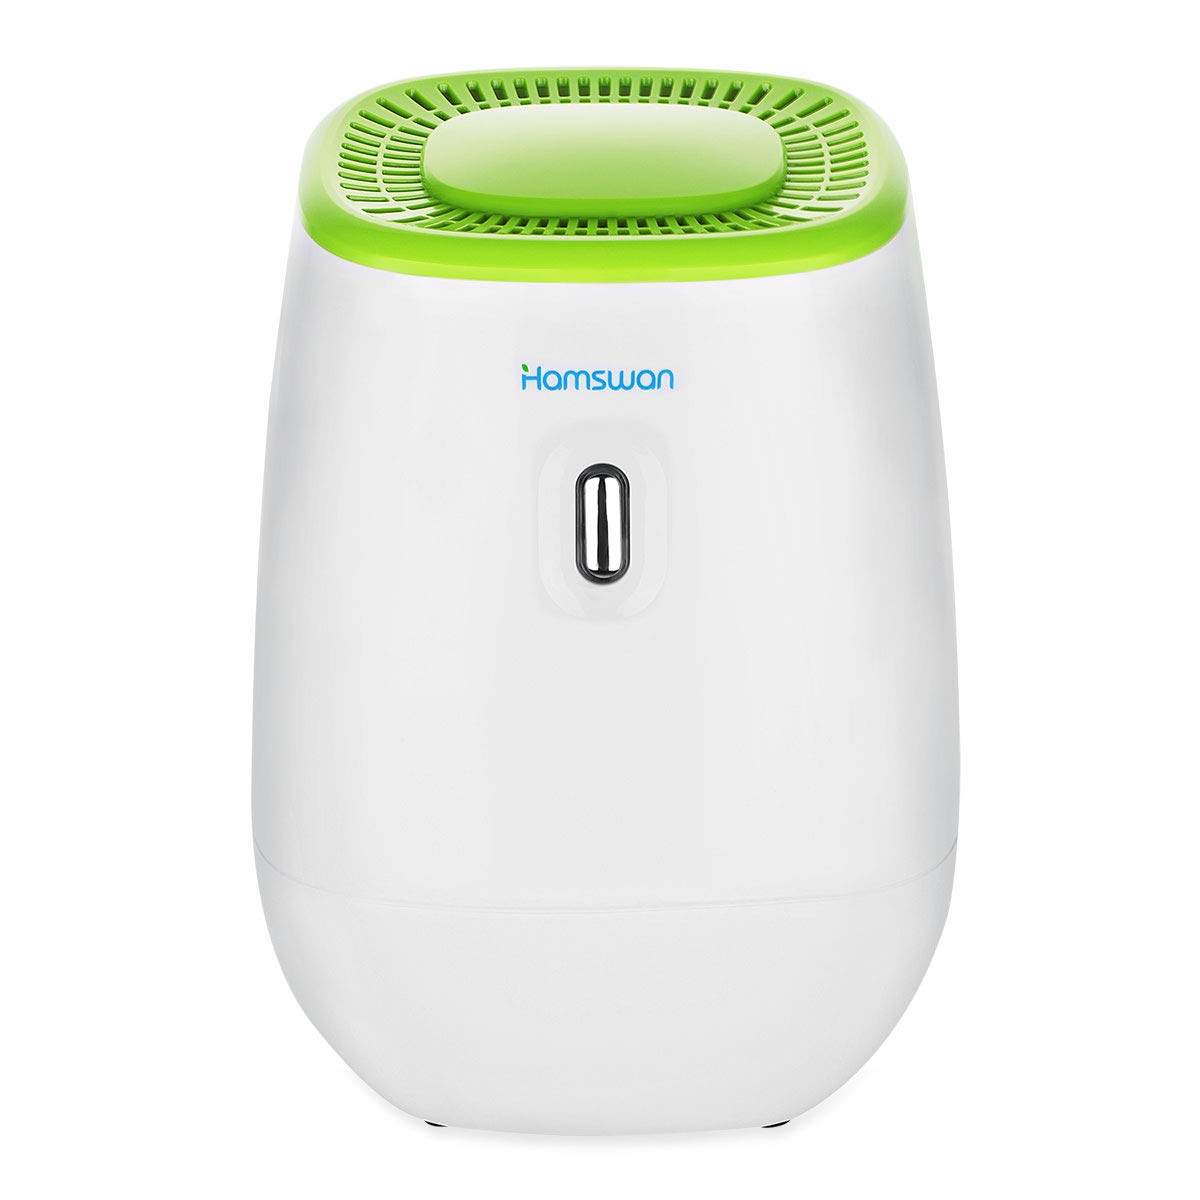 HAMSWAN Small Dehumidifier, Portable Dehumidifier for Bathroom, RV Dehumidifier, Mini Dehumidifier for Home, Bedroom, Closet, Kitchen, 41-Ounce Water Tank, Auto Shutoff, 8.5-Ounce/Day by HAMSWAN